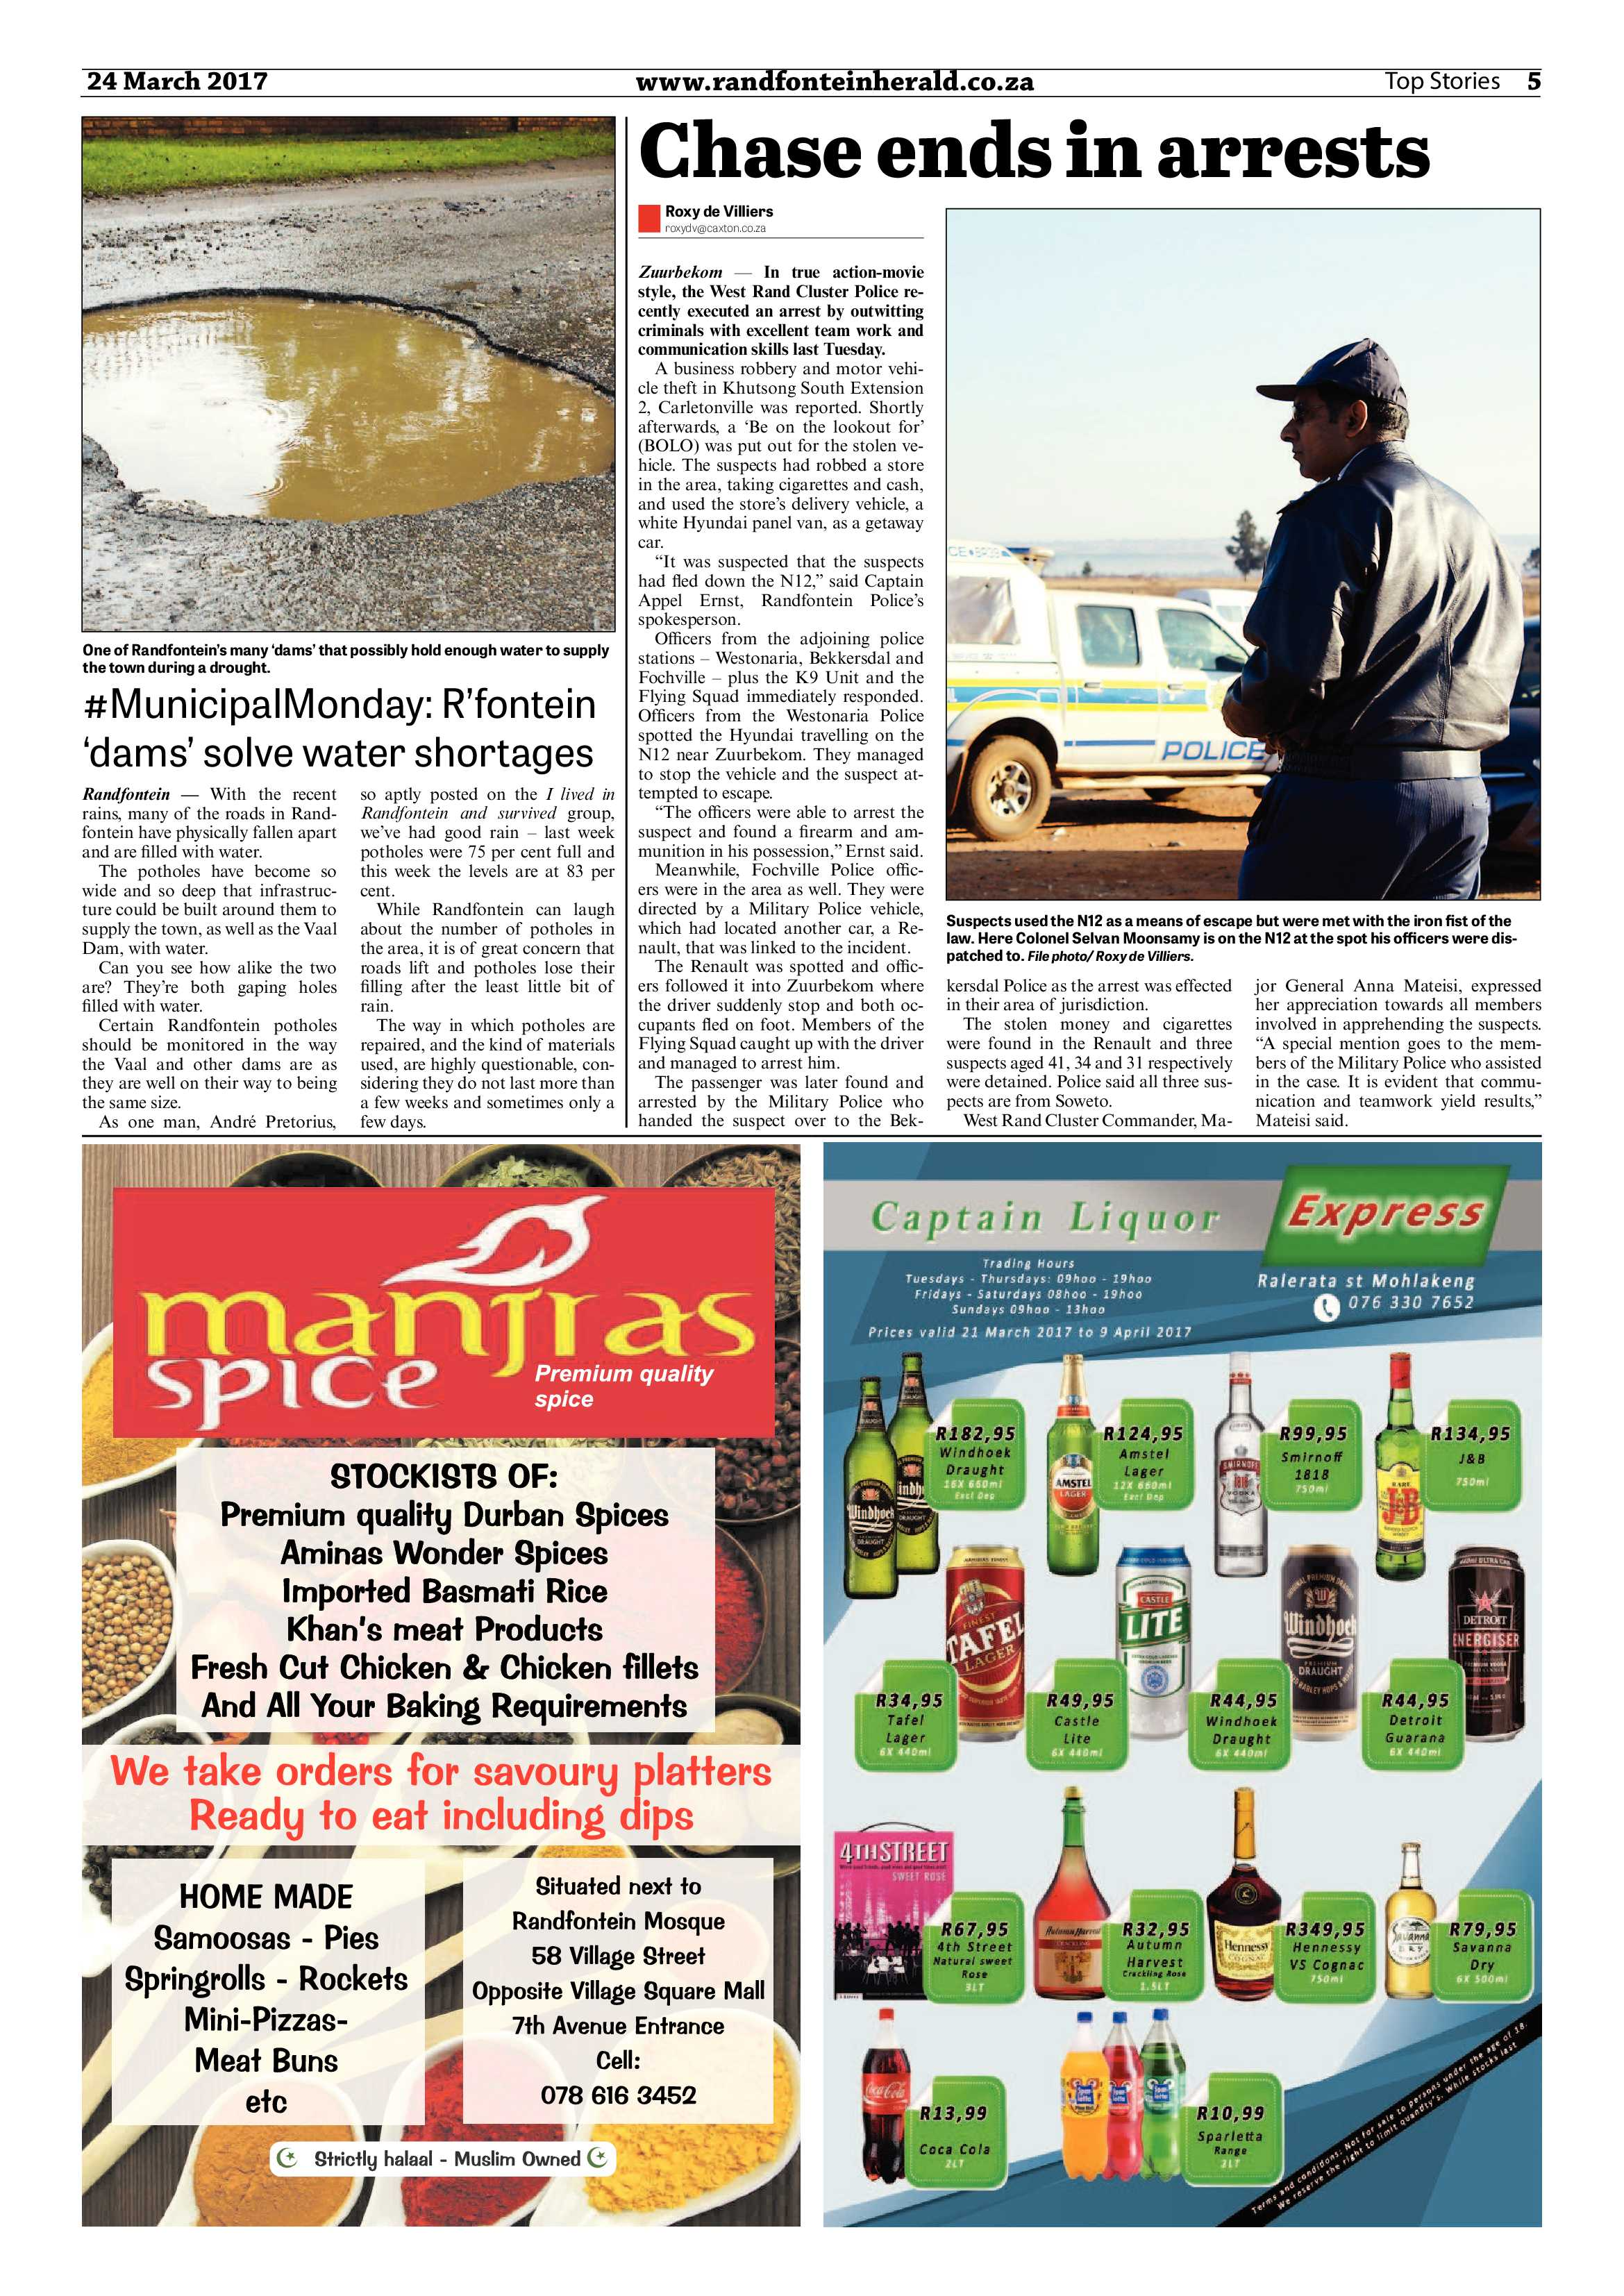 randfontein-herald-24-march-2017-epapers-page-5